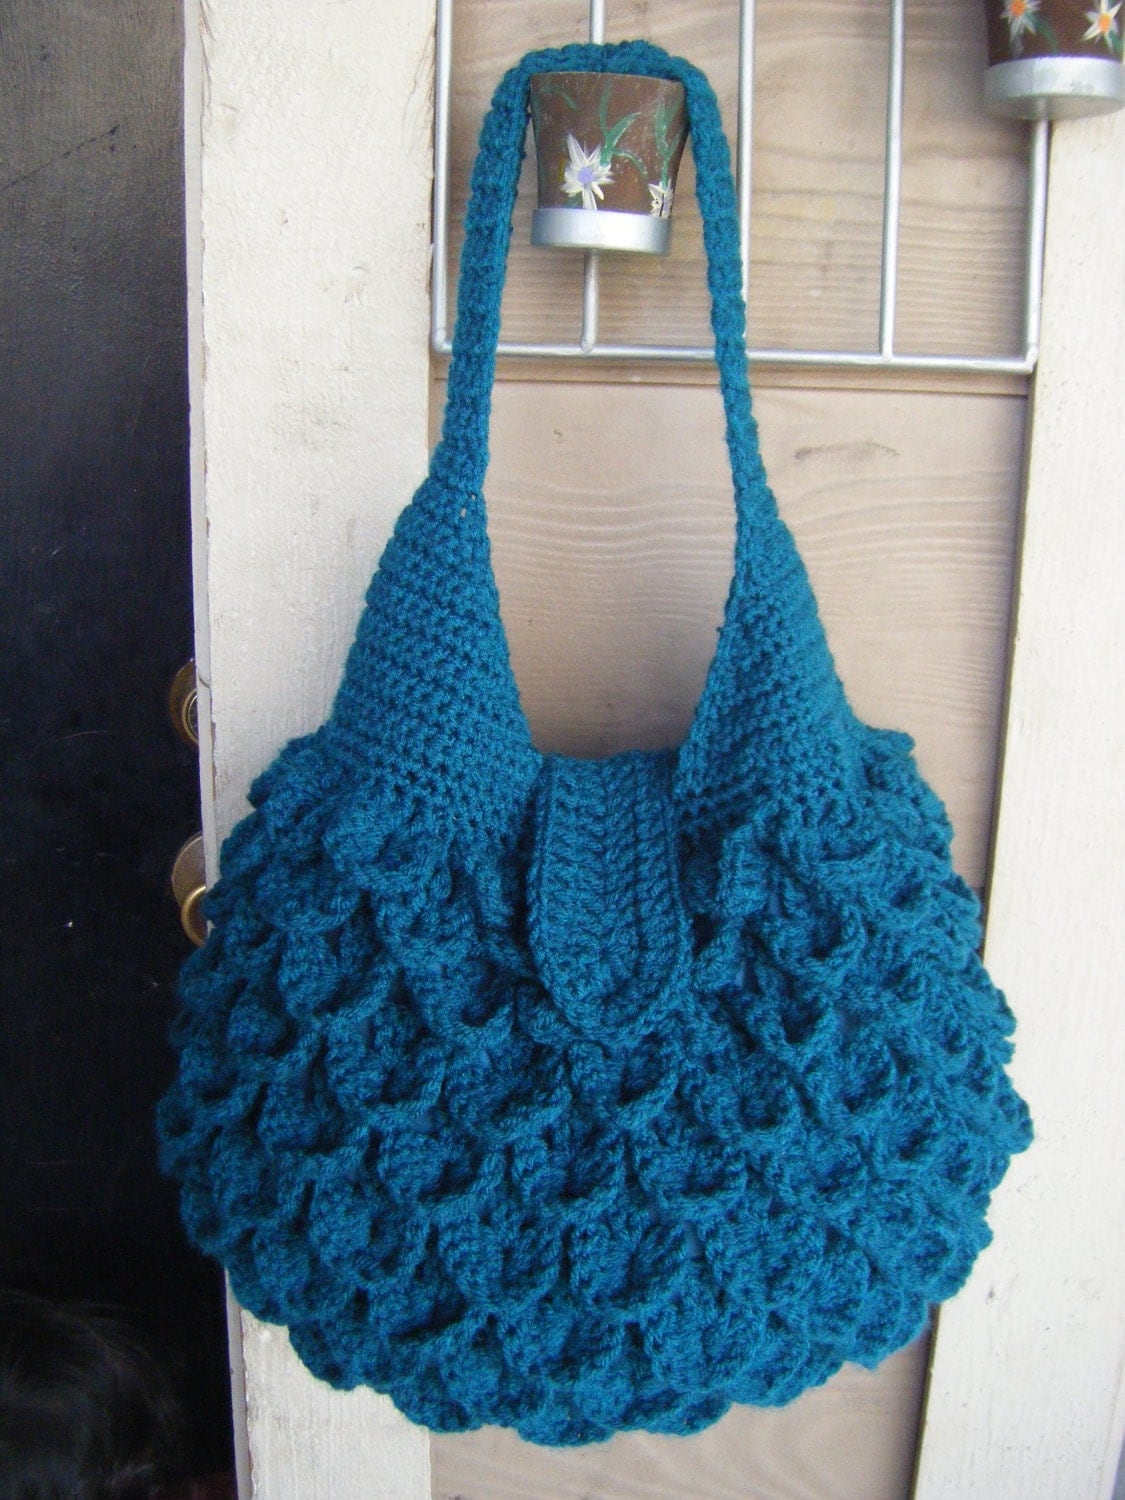 Crocheted Handbag : Crochet Crocodile Bag Pattern PERMISSION SELL by NatalieSpot